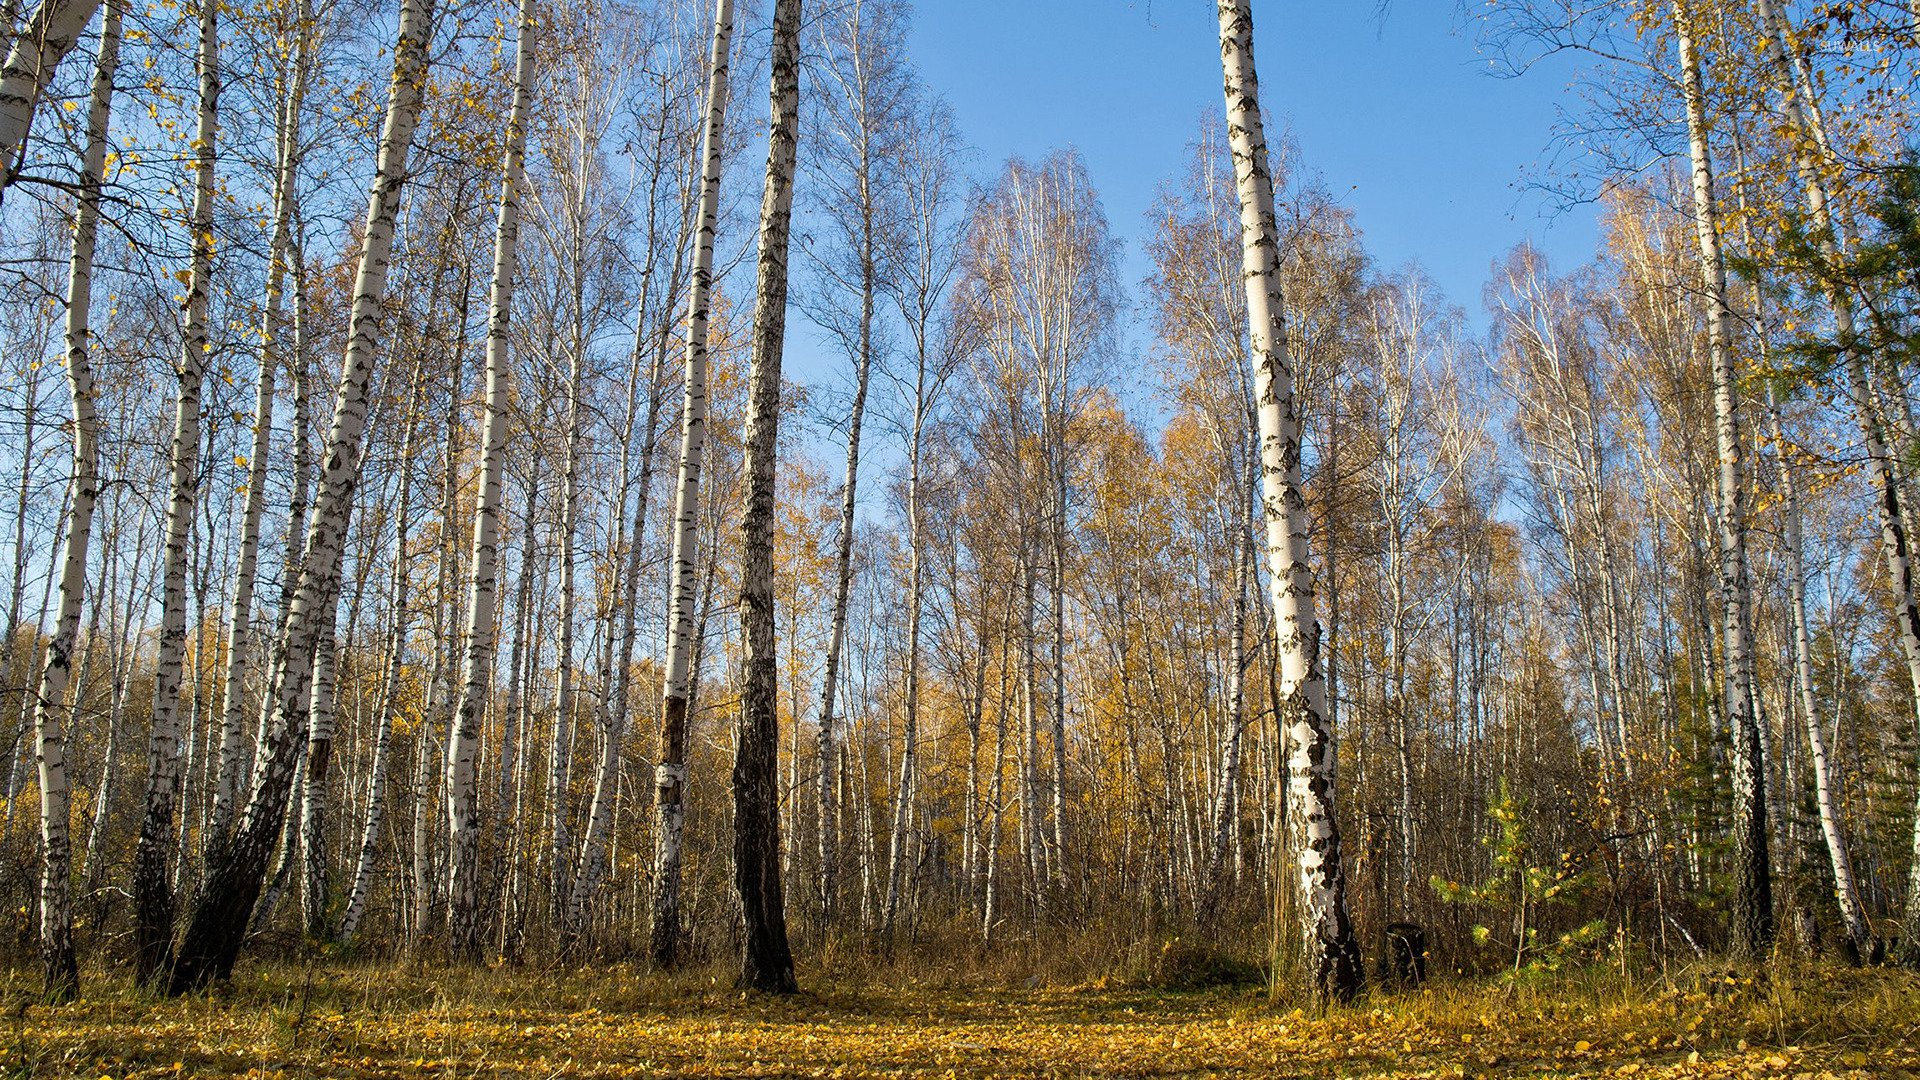 Birch trees wallpaper   Nature wallpapers   40085 1920x1080